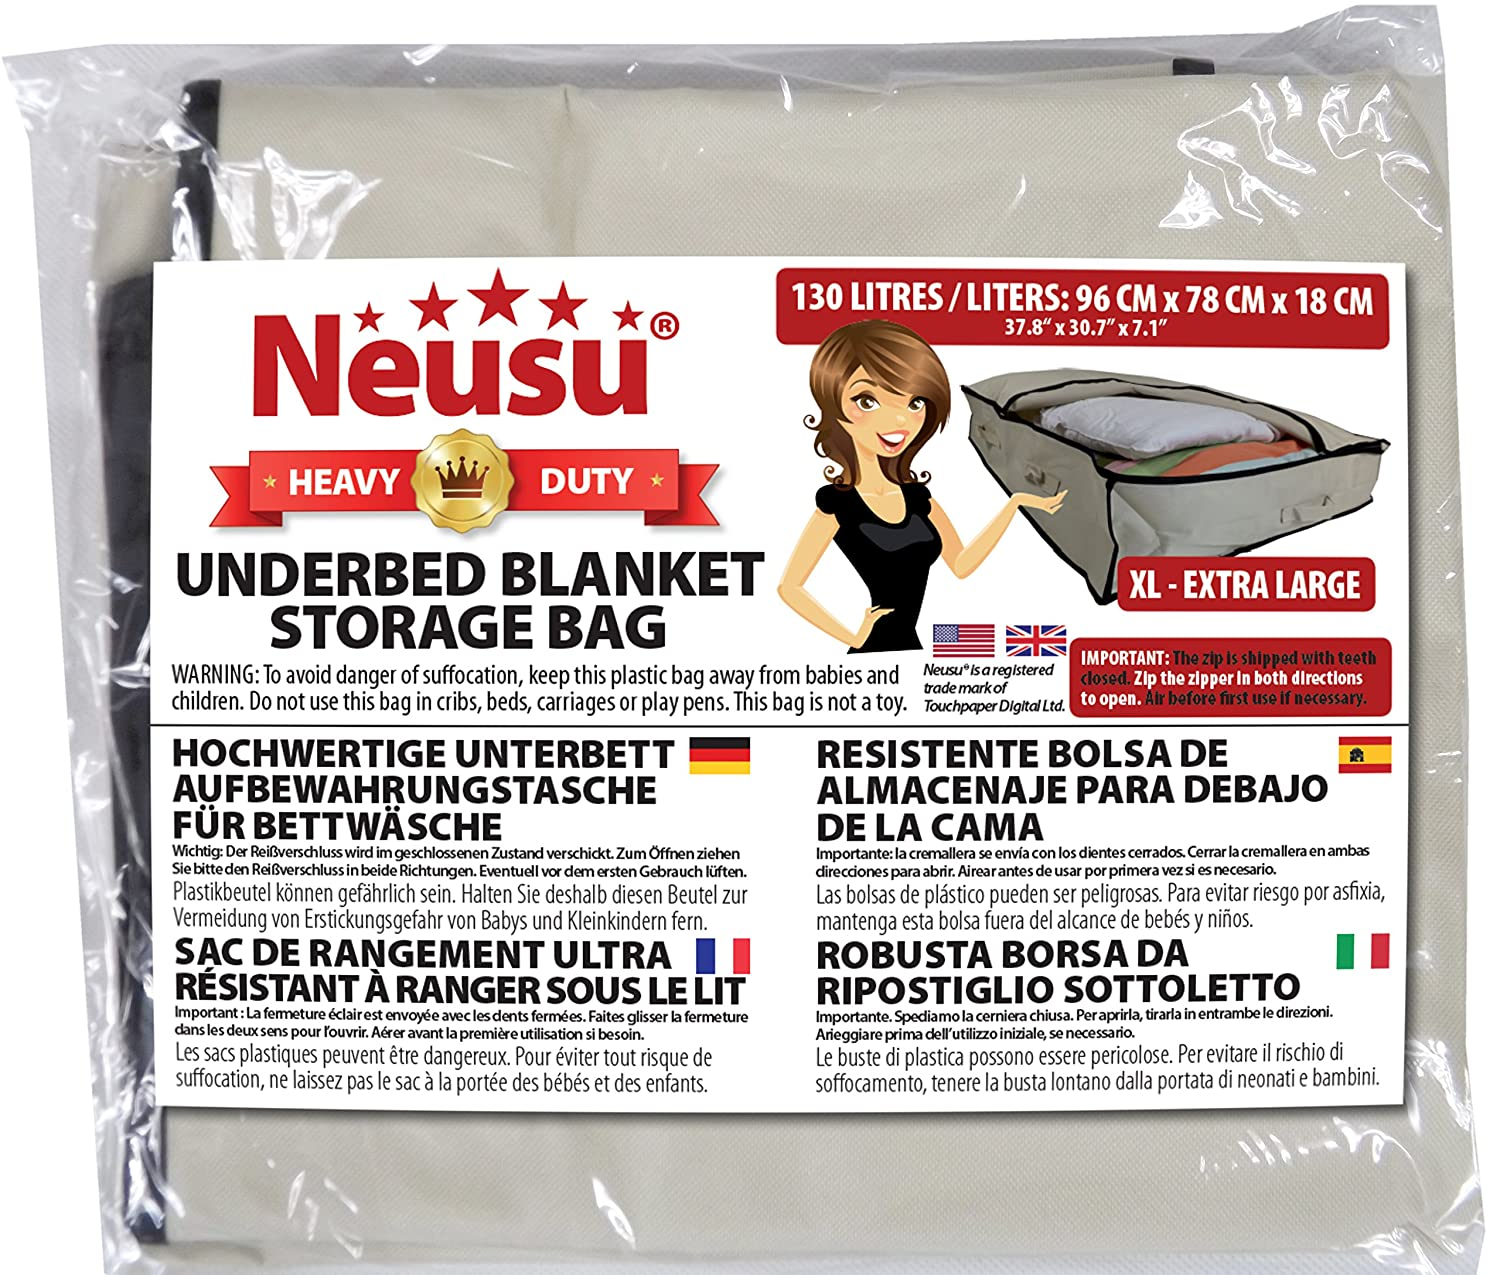 Neusu Under Bed Storage Bag XL - Beige, Extra Large, 130 Liters, 37.8